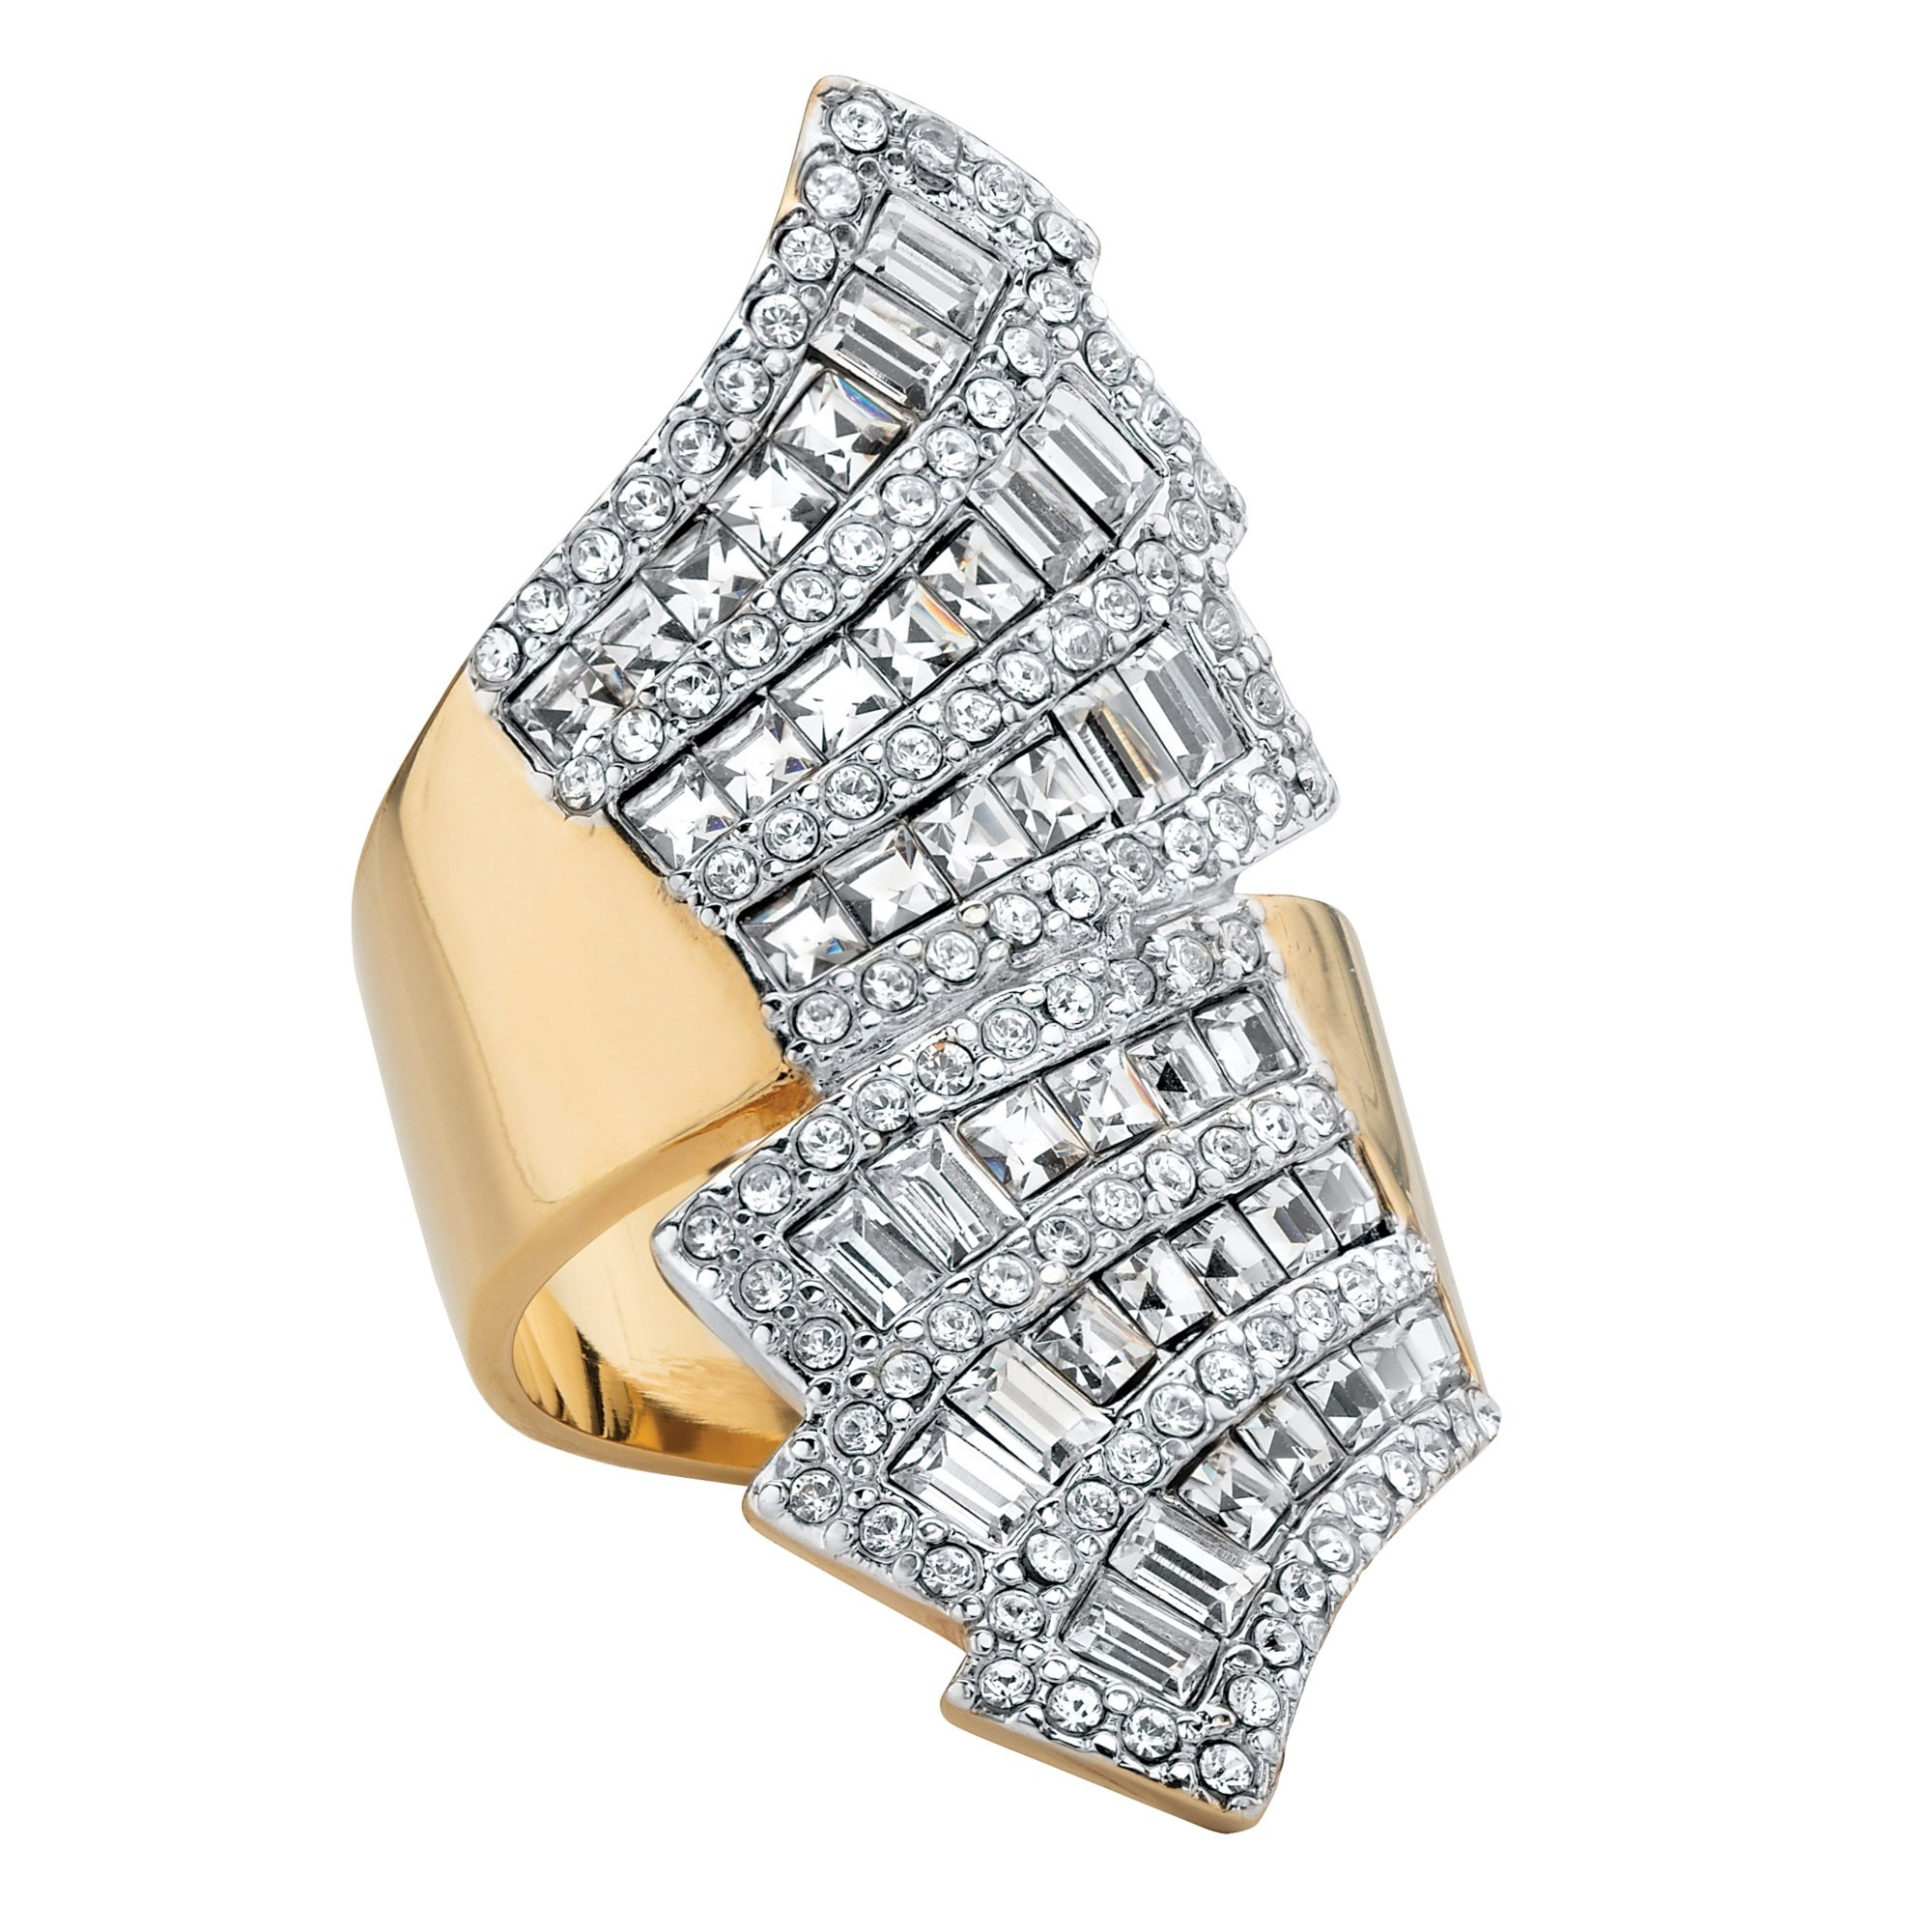 Palm Beach Jewelry 14k Gold-Plated Step Top Baguette Bypass Ring Made Swarovski Elements Size 9